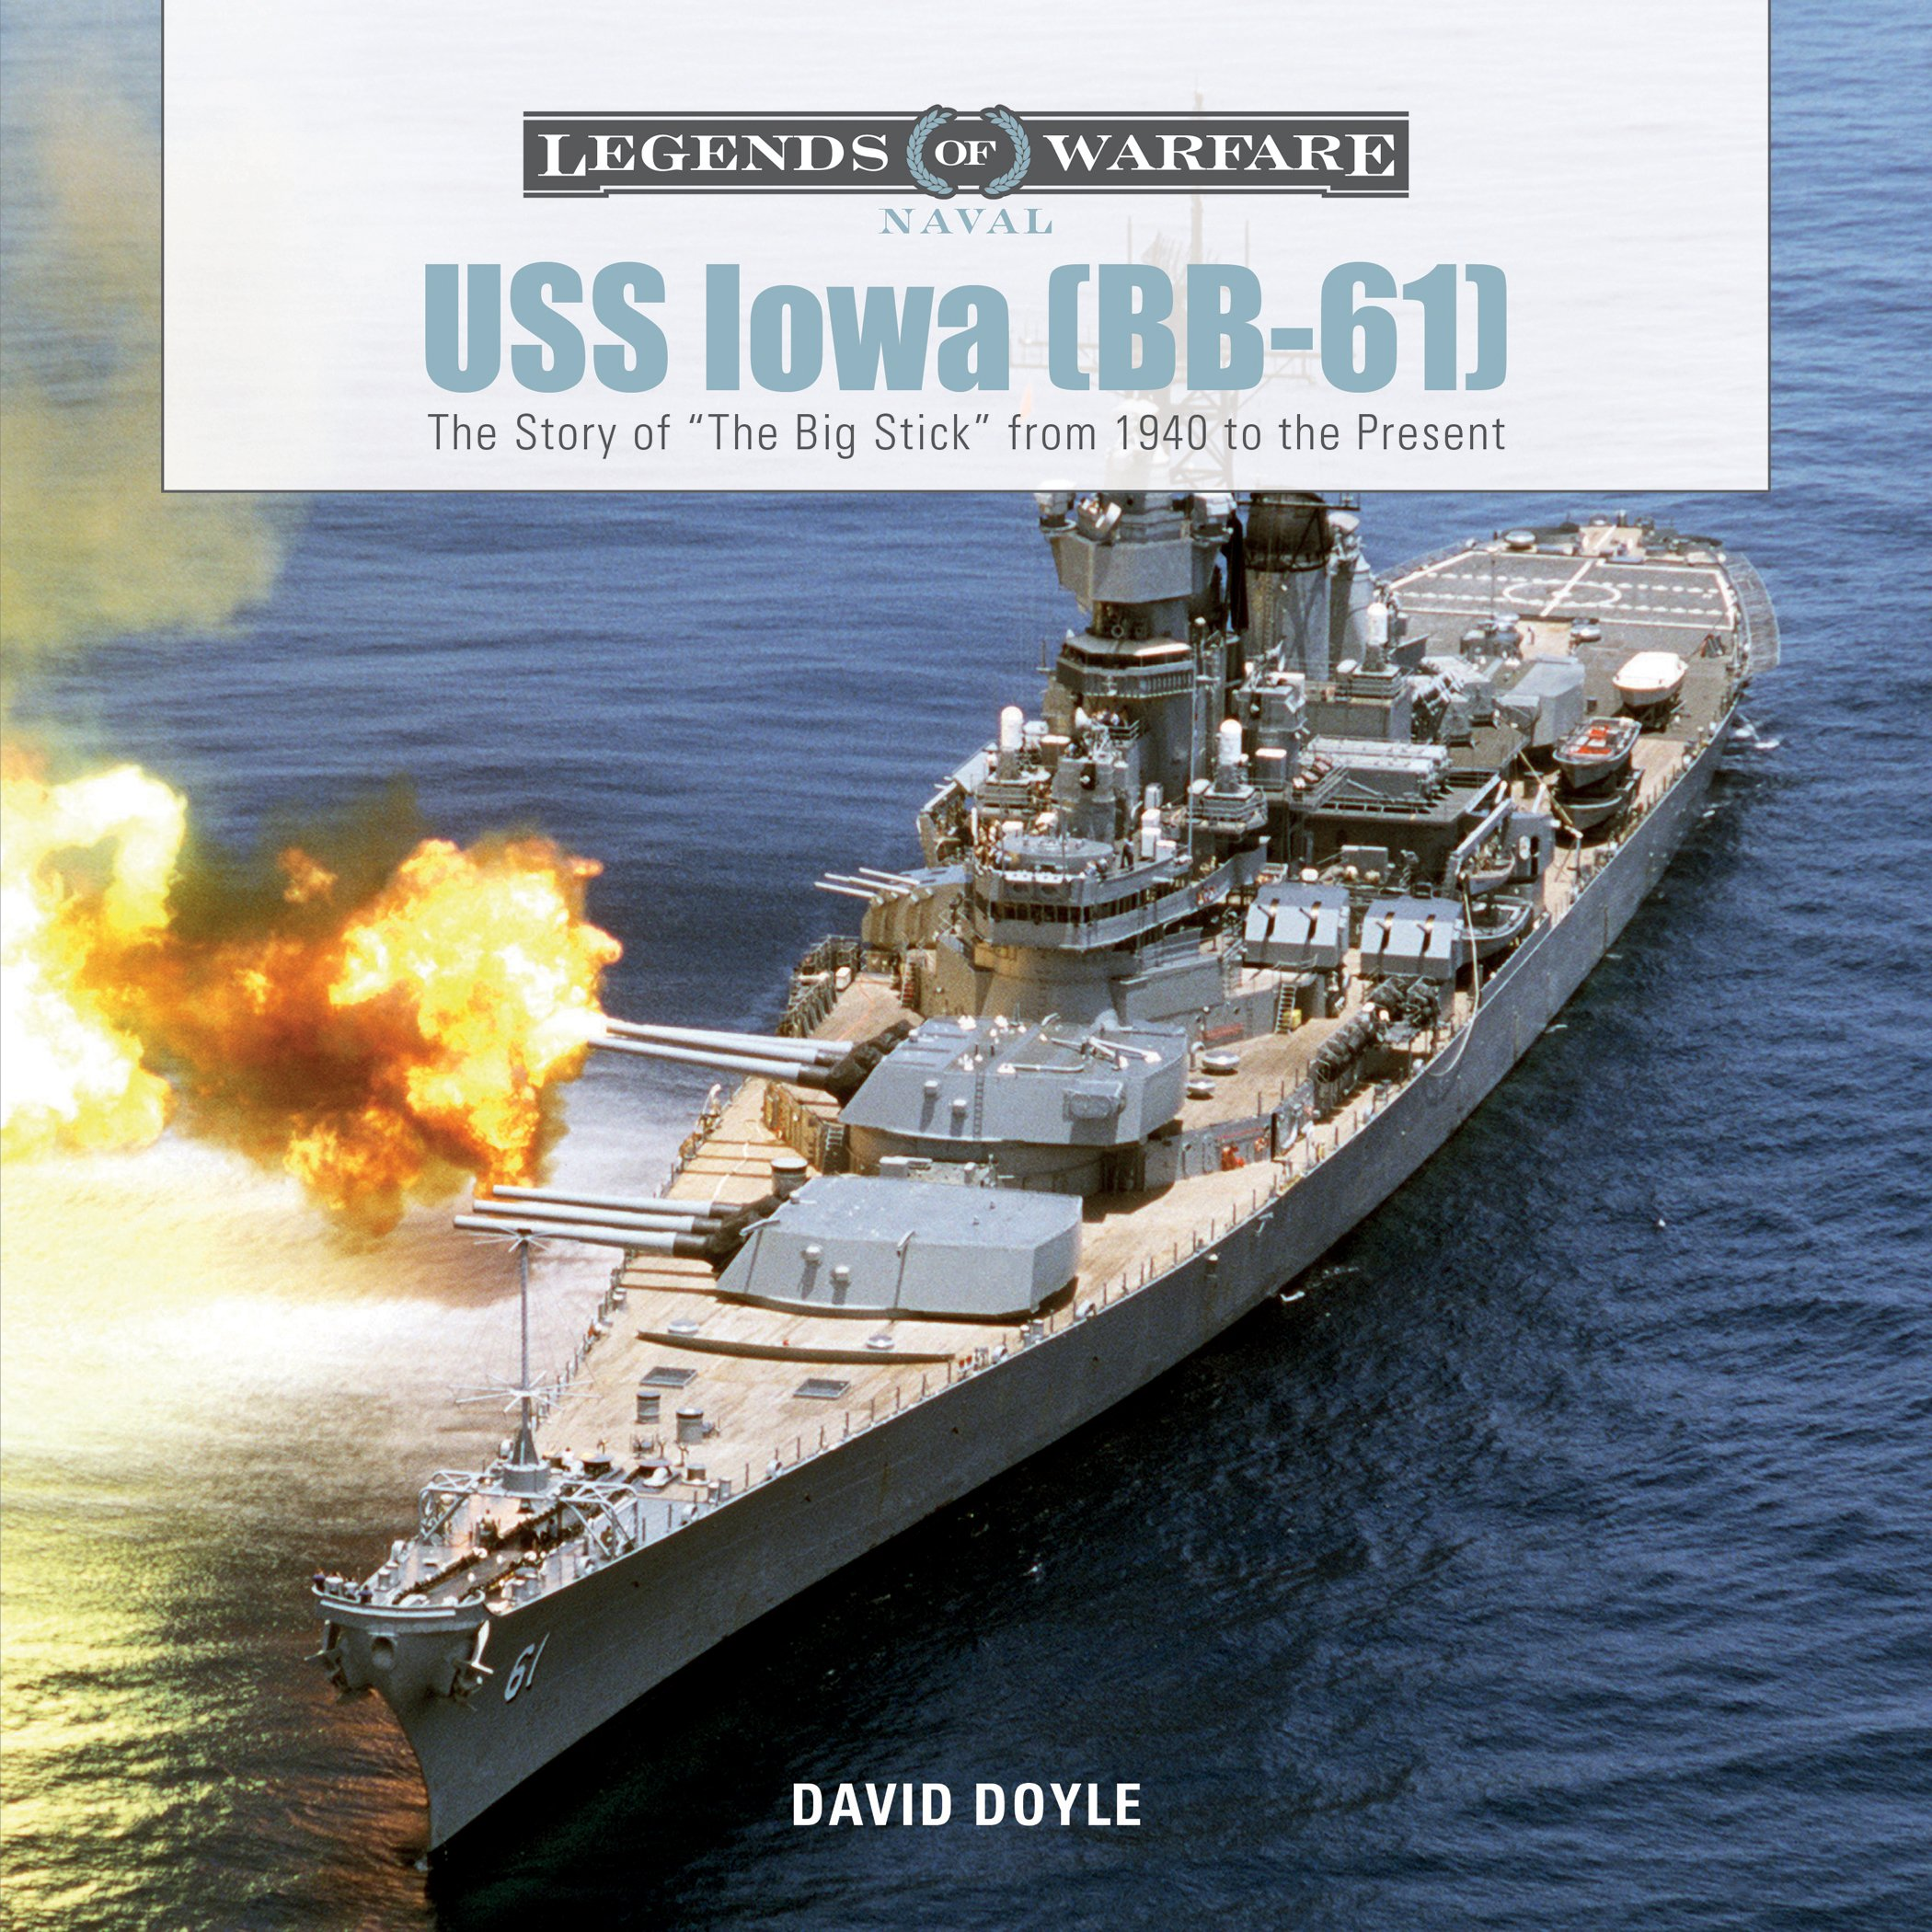 USS Iowa (BB-61): The Story of The Big Stick from 1940 to the Present (Legends of Warfare: Naval)